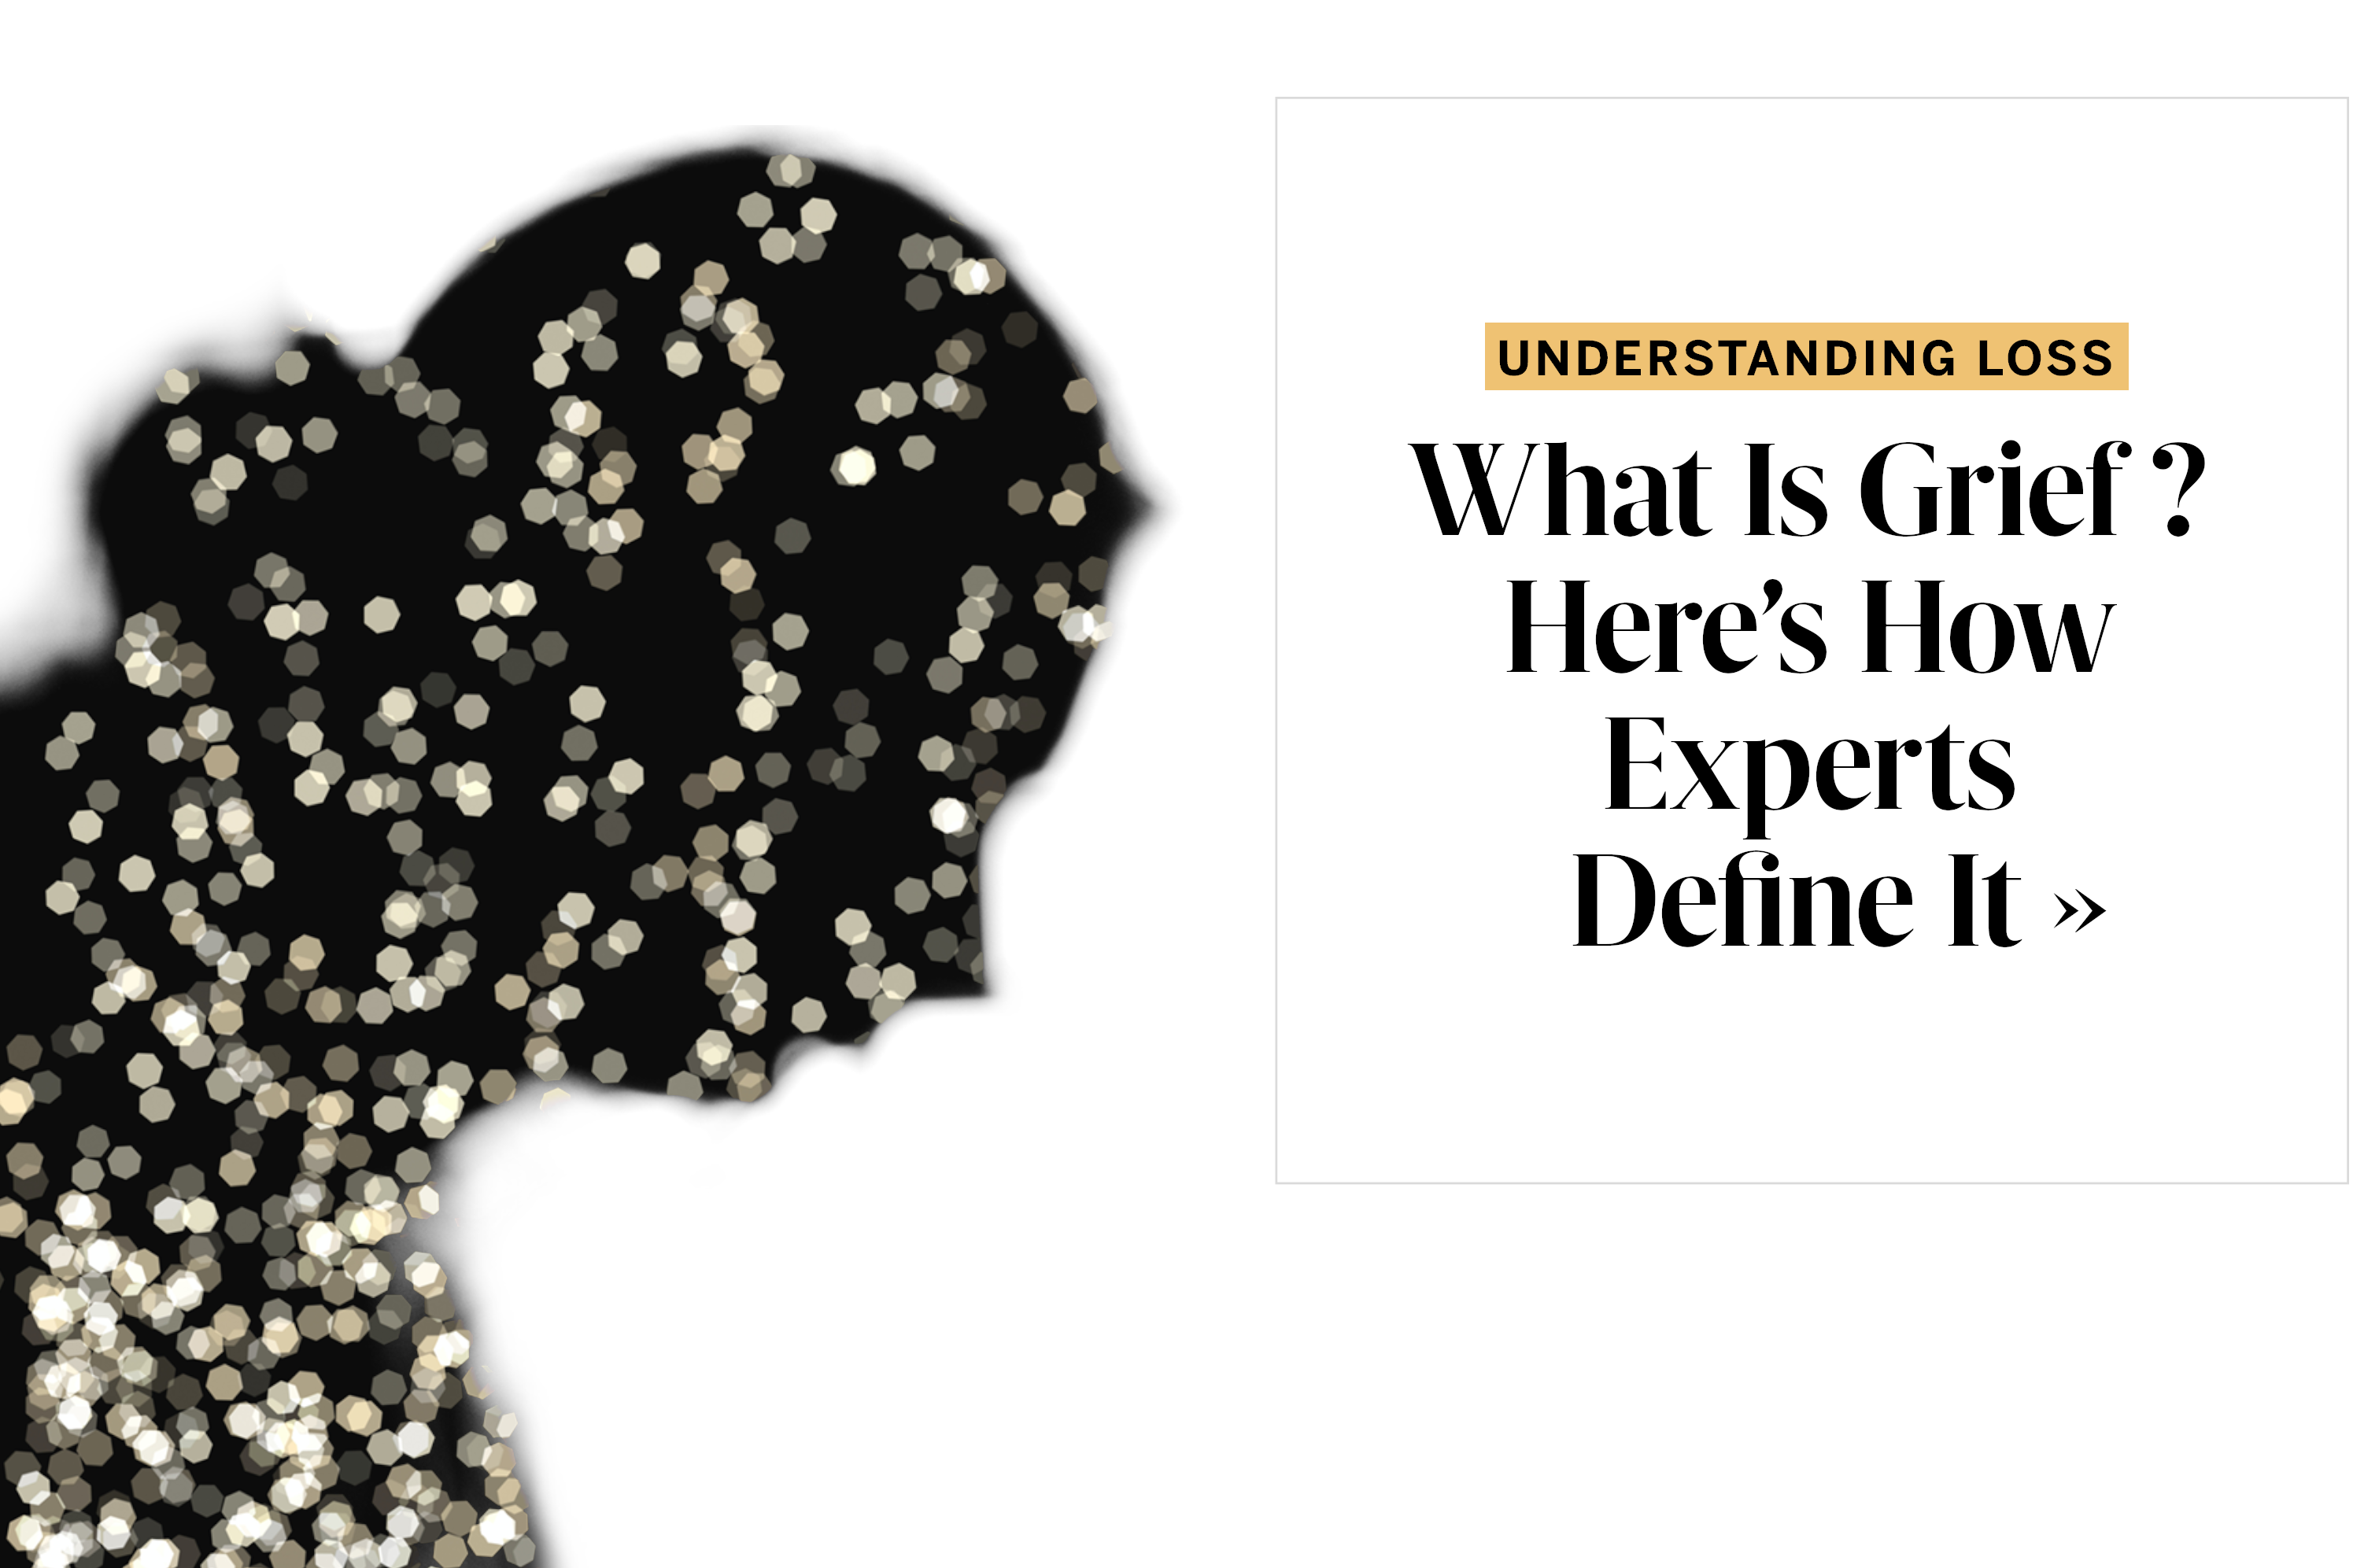 What Is Grief? Here's How Experts Define It